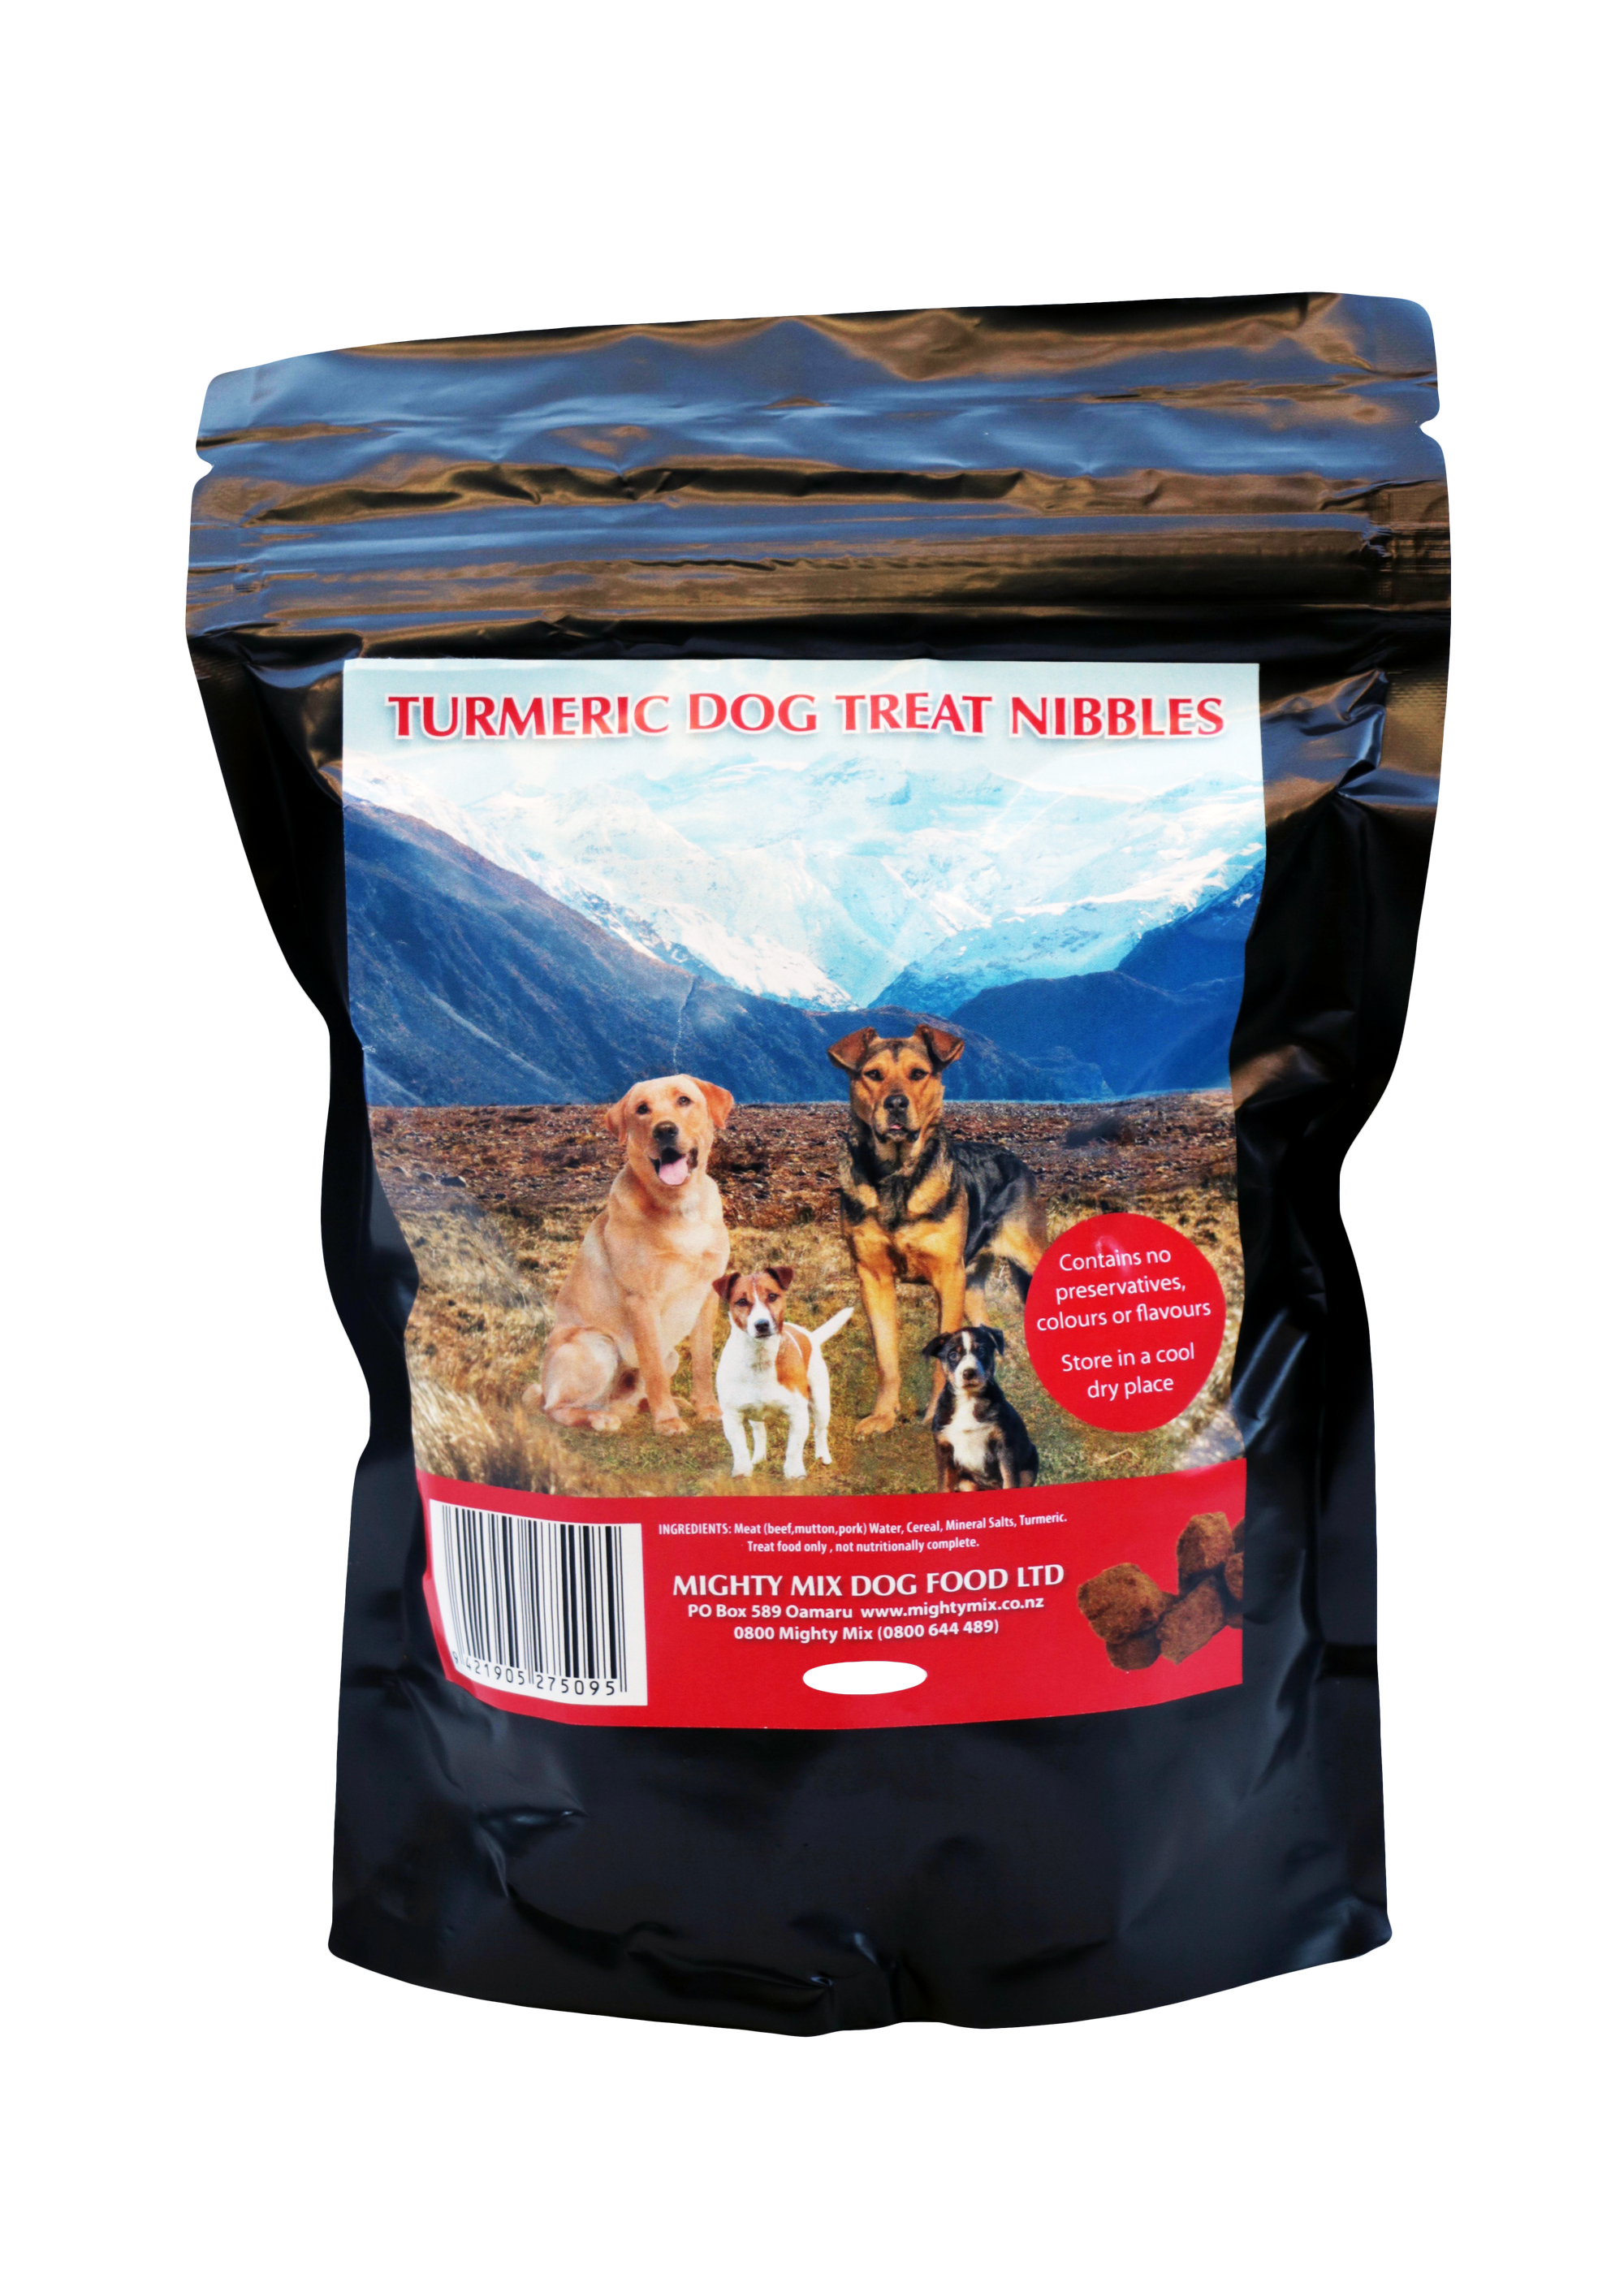 Mighty Mix Turmeric Dog Treat Nibbles